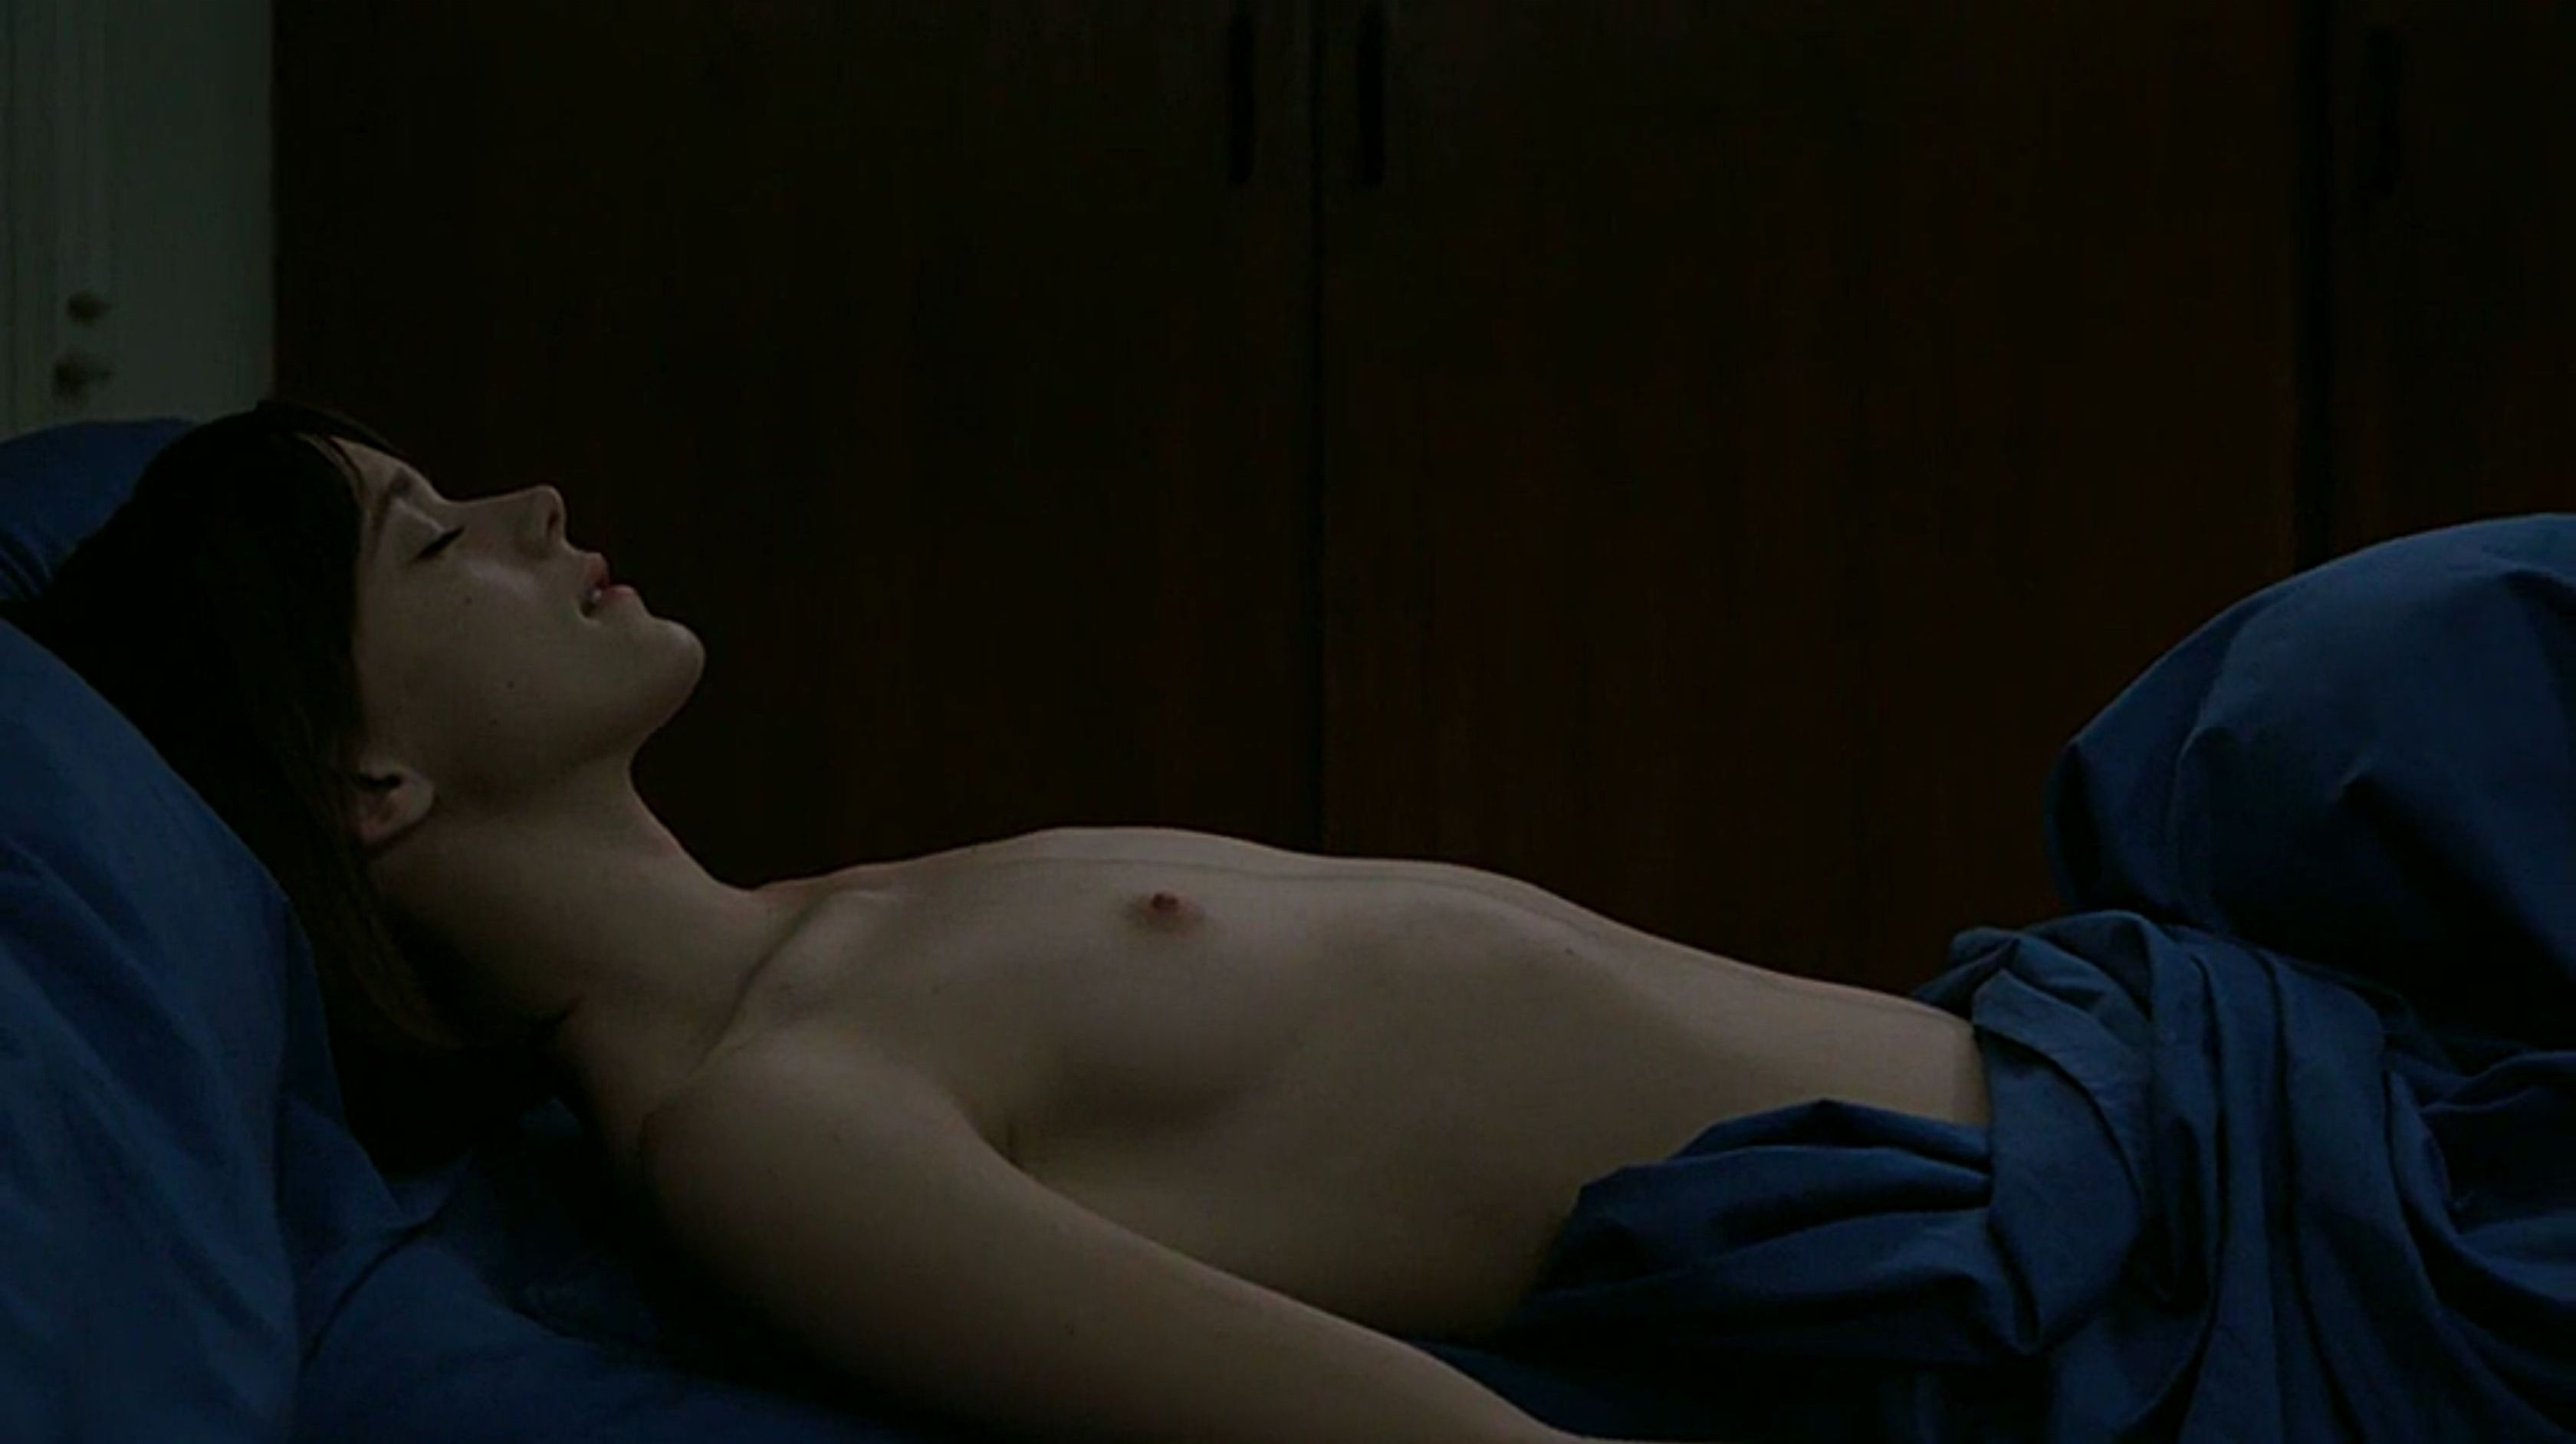 Stacy-Martin-Nude-Le-Redoutable-2017-9-The-Fappening-Blog.jpg